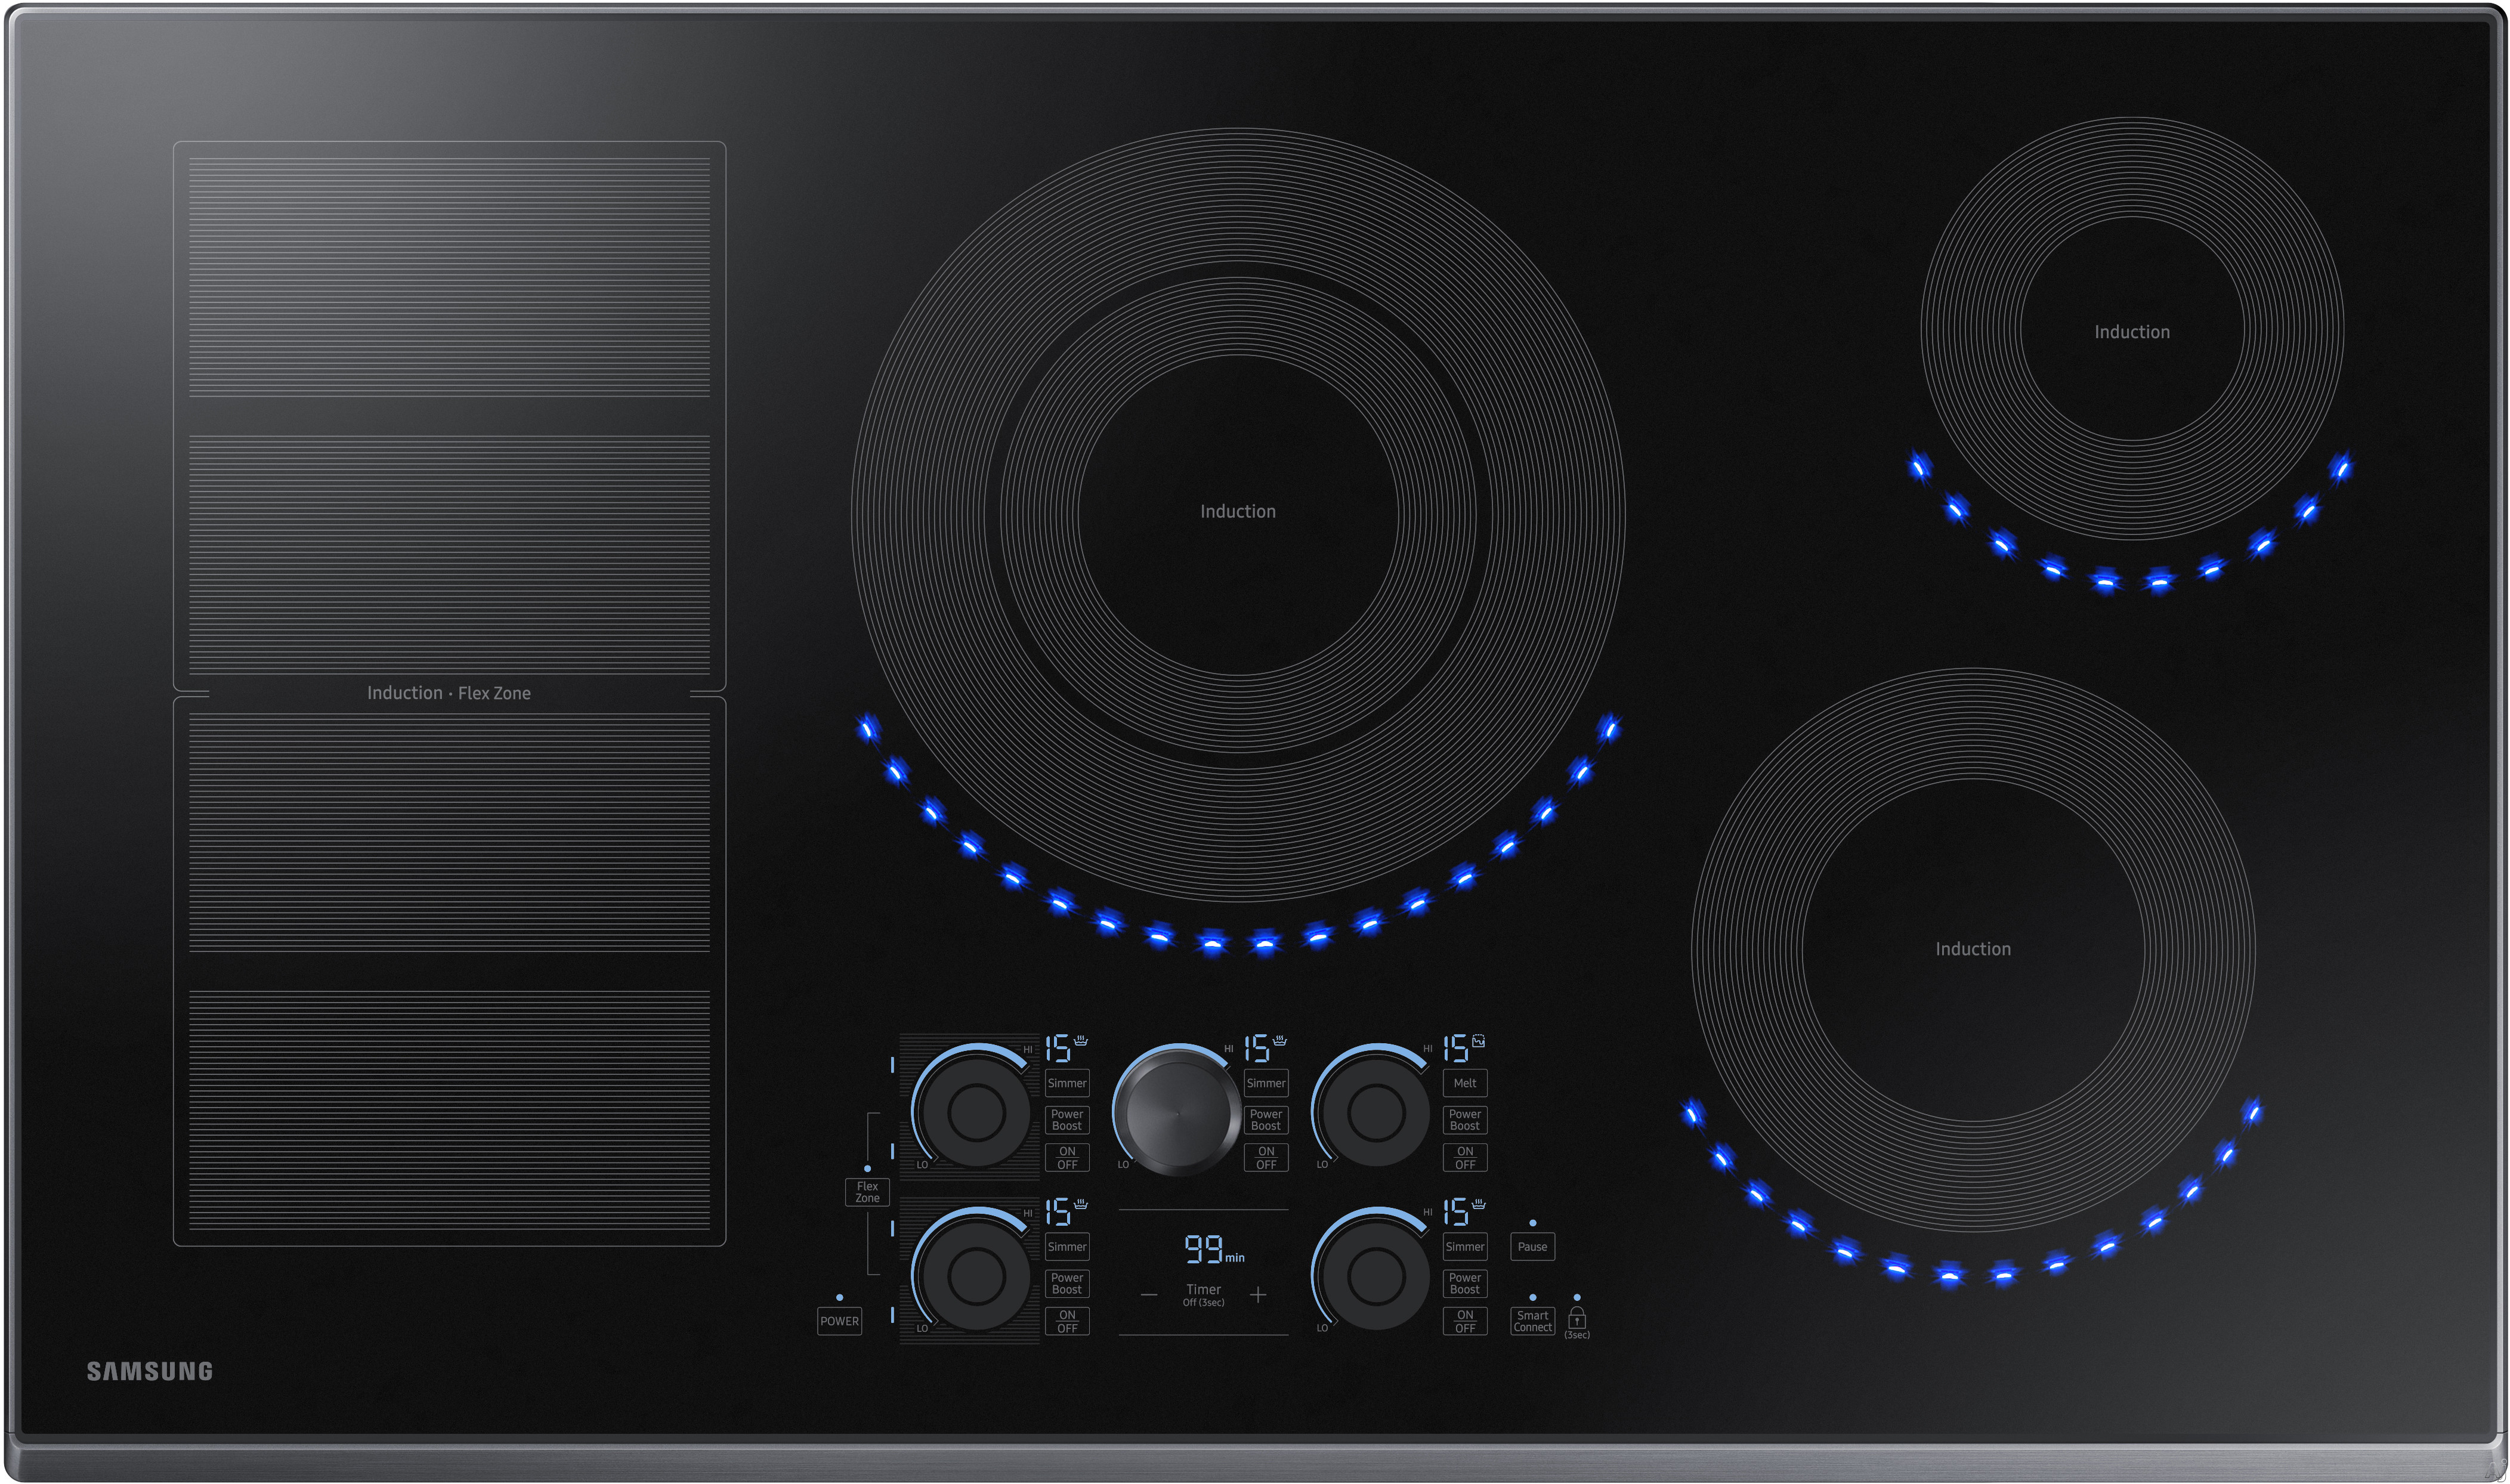 Samsung NZ36K7880UG 36 Inch Induction Cooktop with Flex Zone, 15 Heat Settings, Power Boost, Melt Mode, Simmer Control, Virtual Flame Surface Lights, Timer, Control Lock and Wi-Fi Connectivity: Black